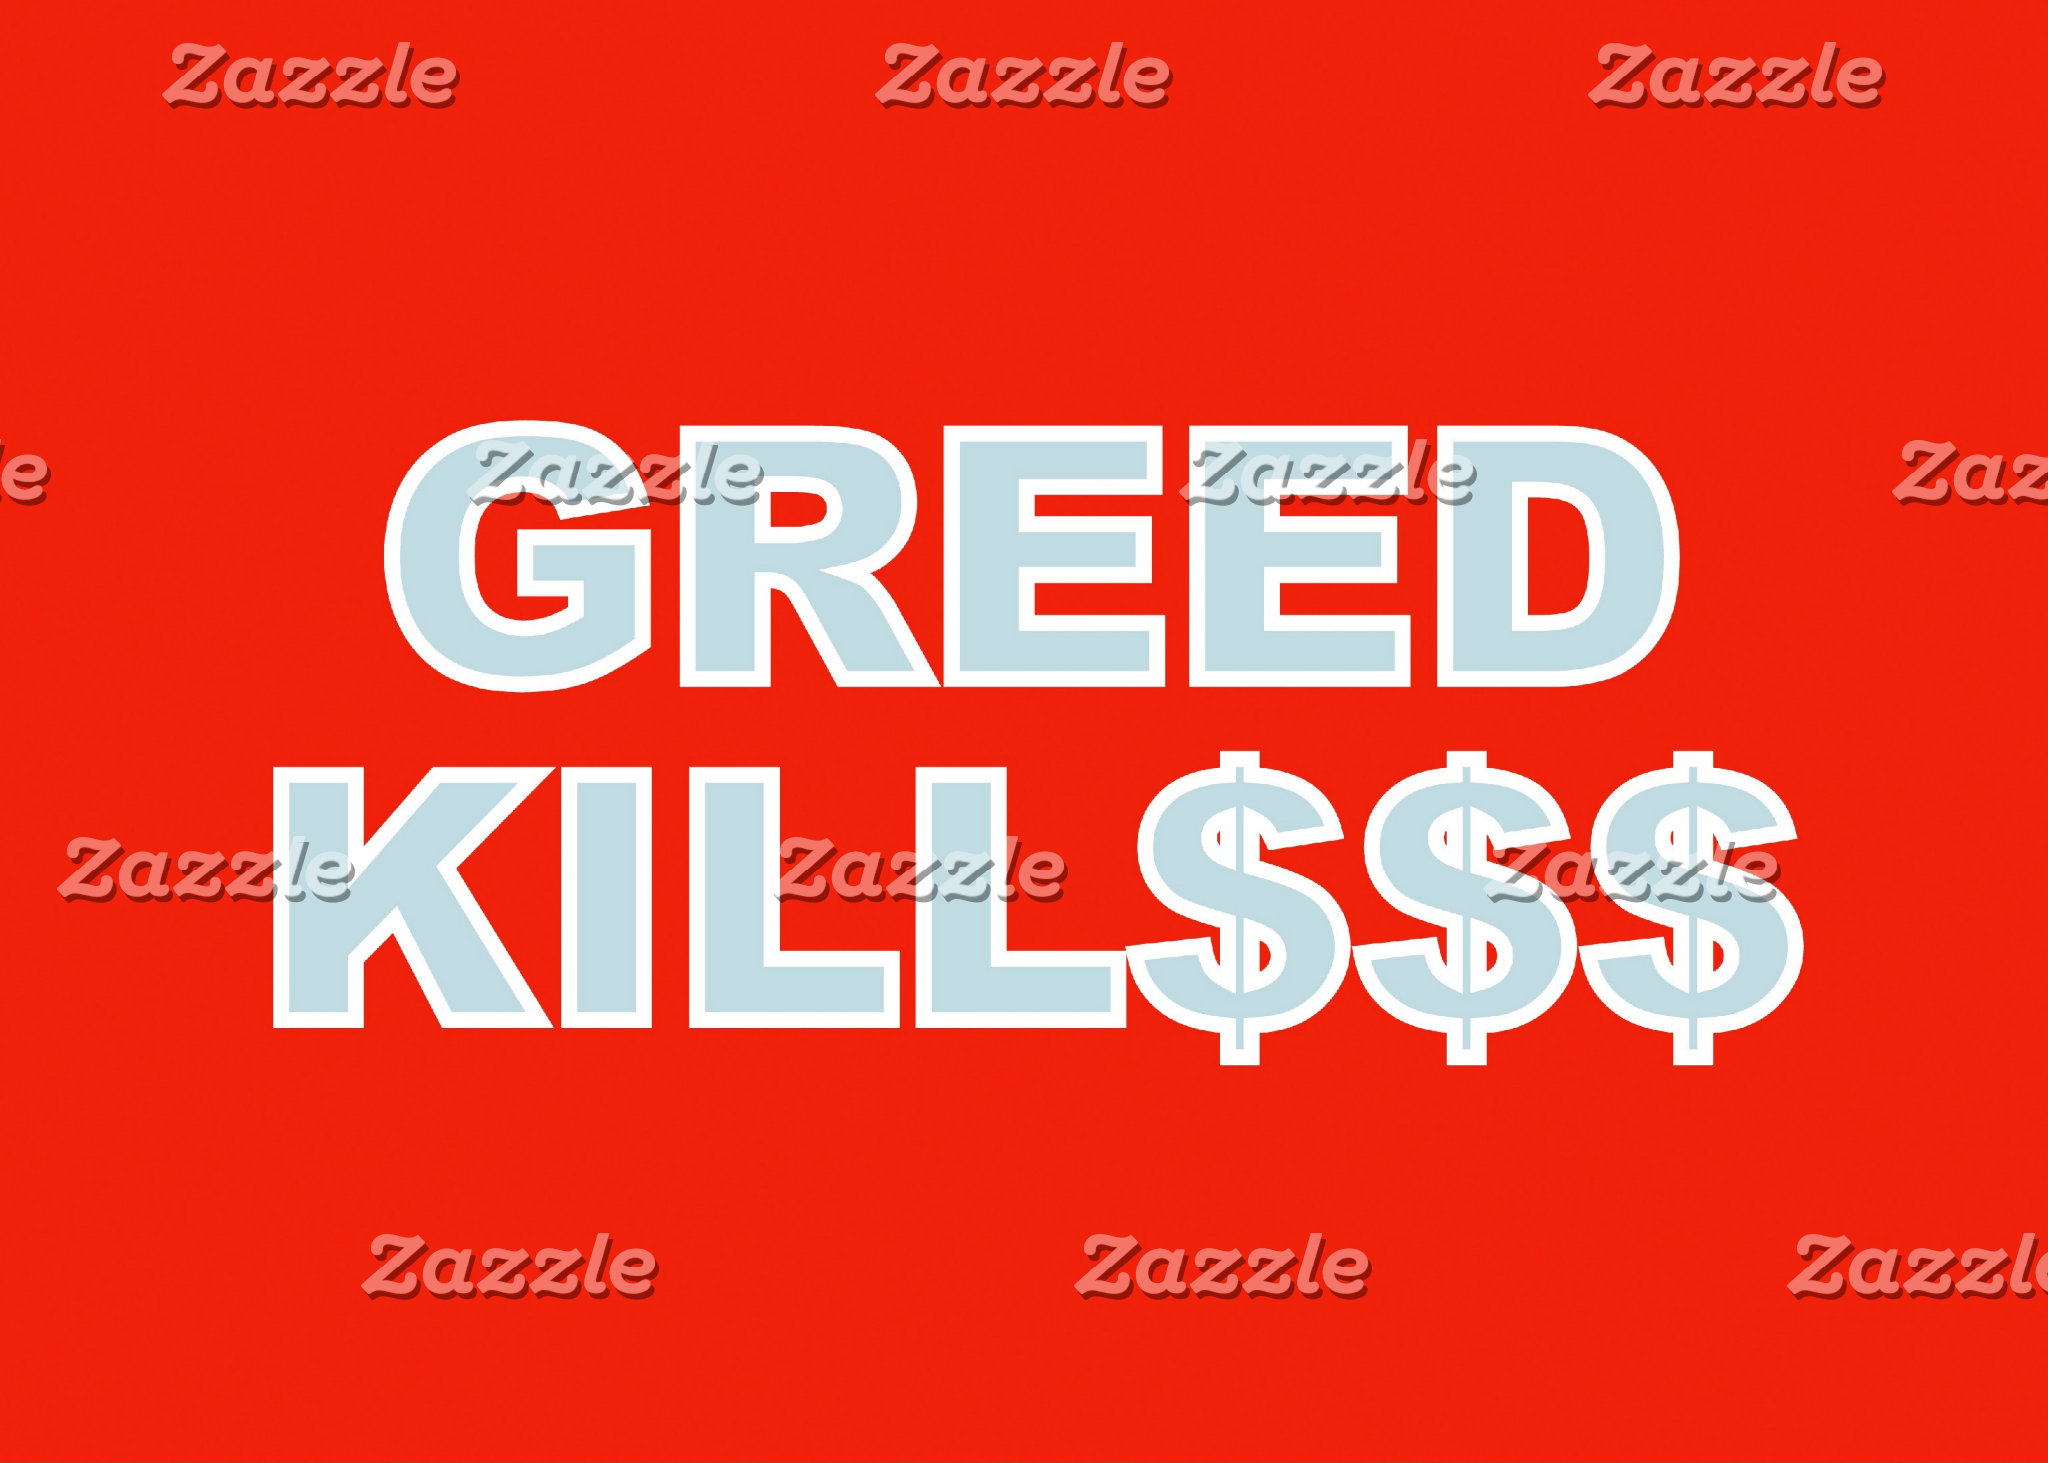 GREED KILL$